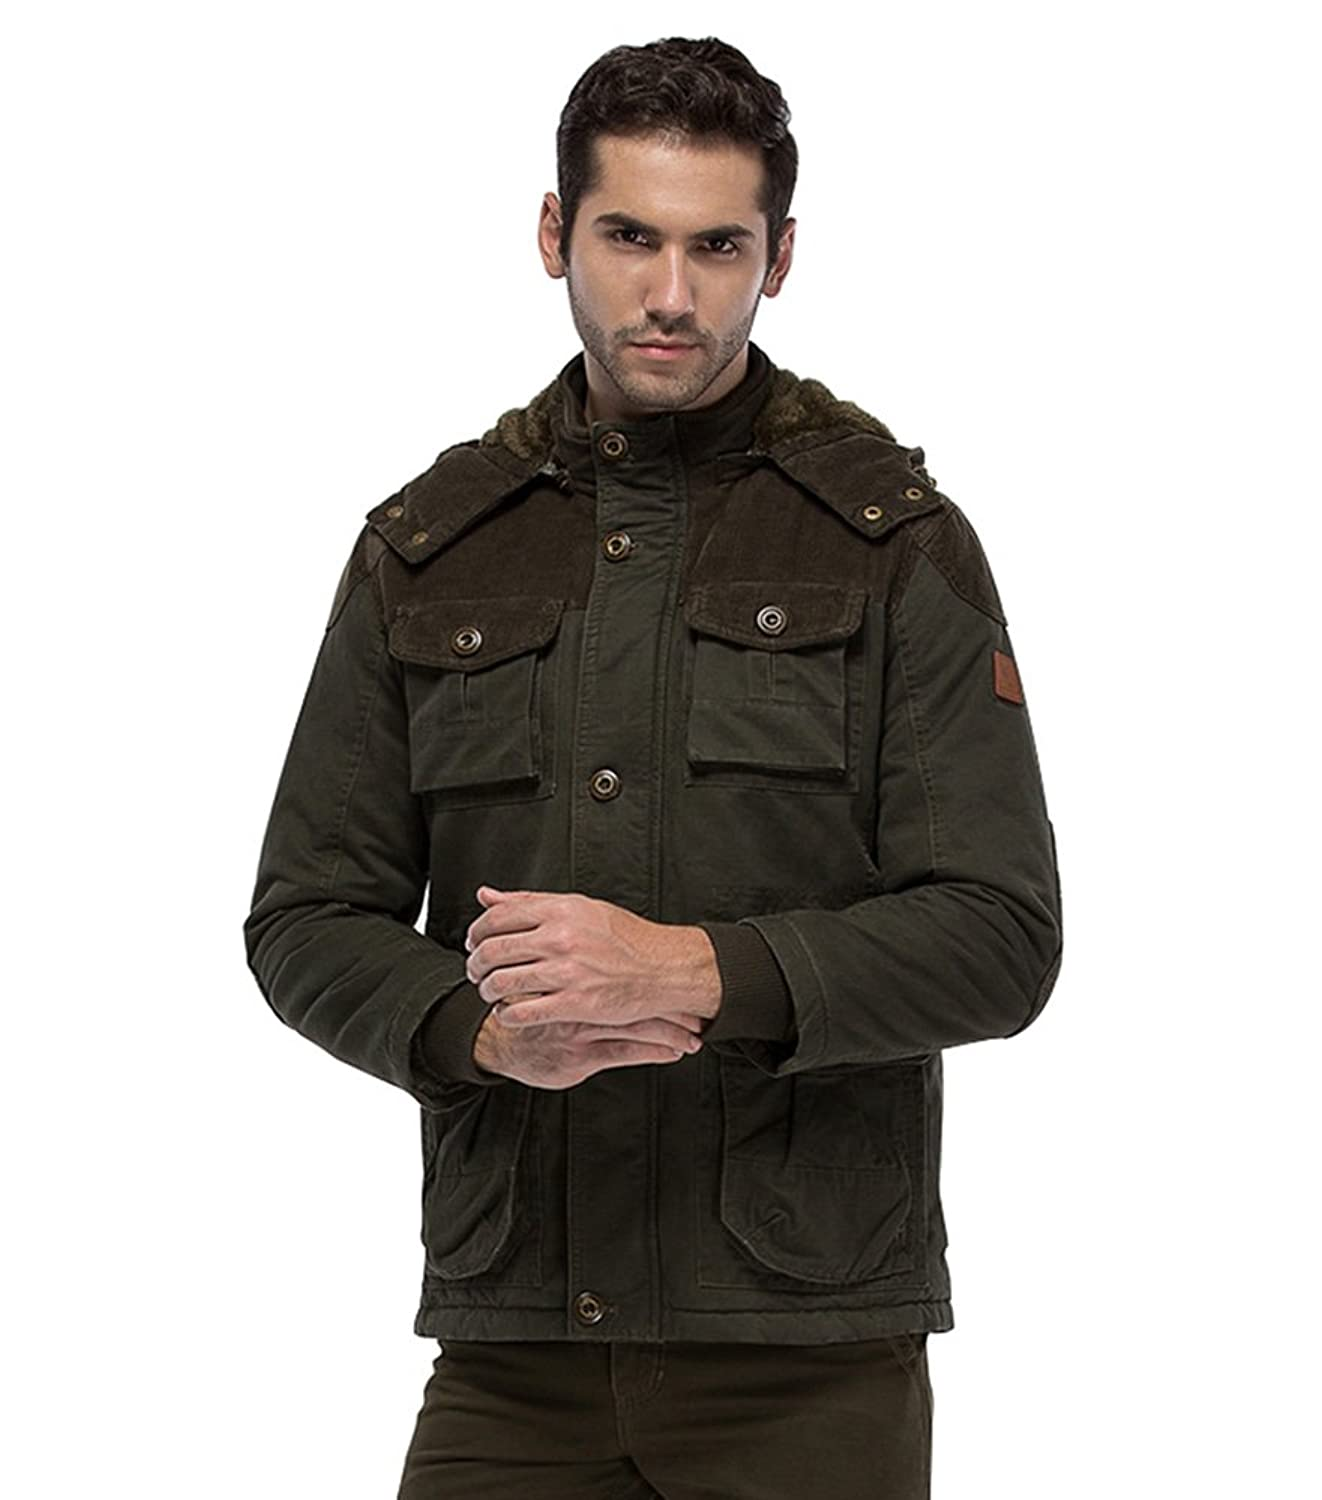 Baishun Men's Winter Thicken Multi-Pocket Cotton Jacket & Coat with Removable Hoodies